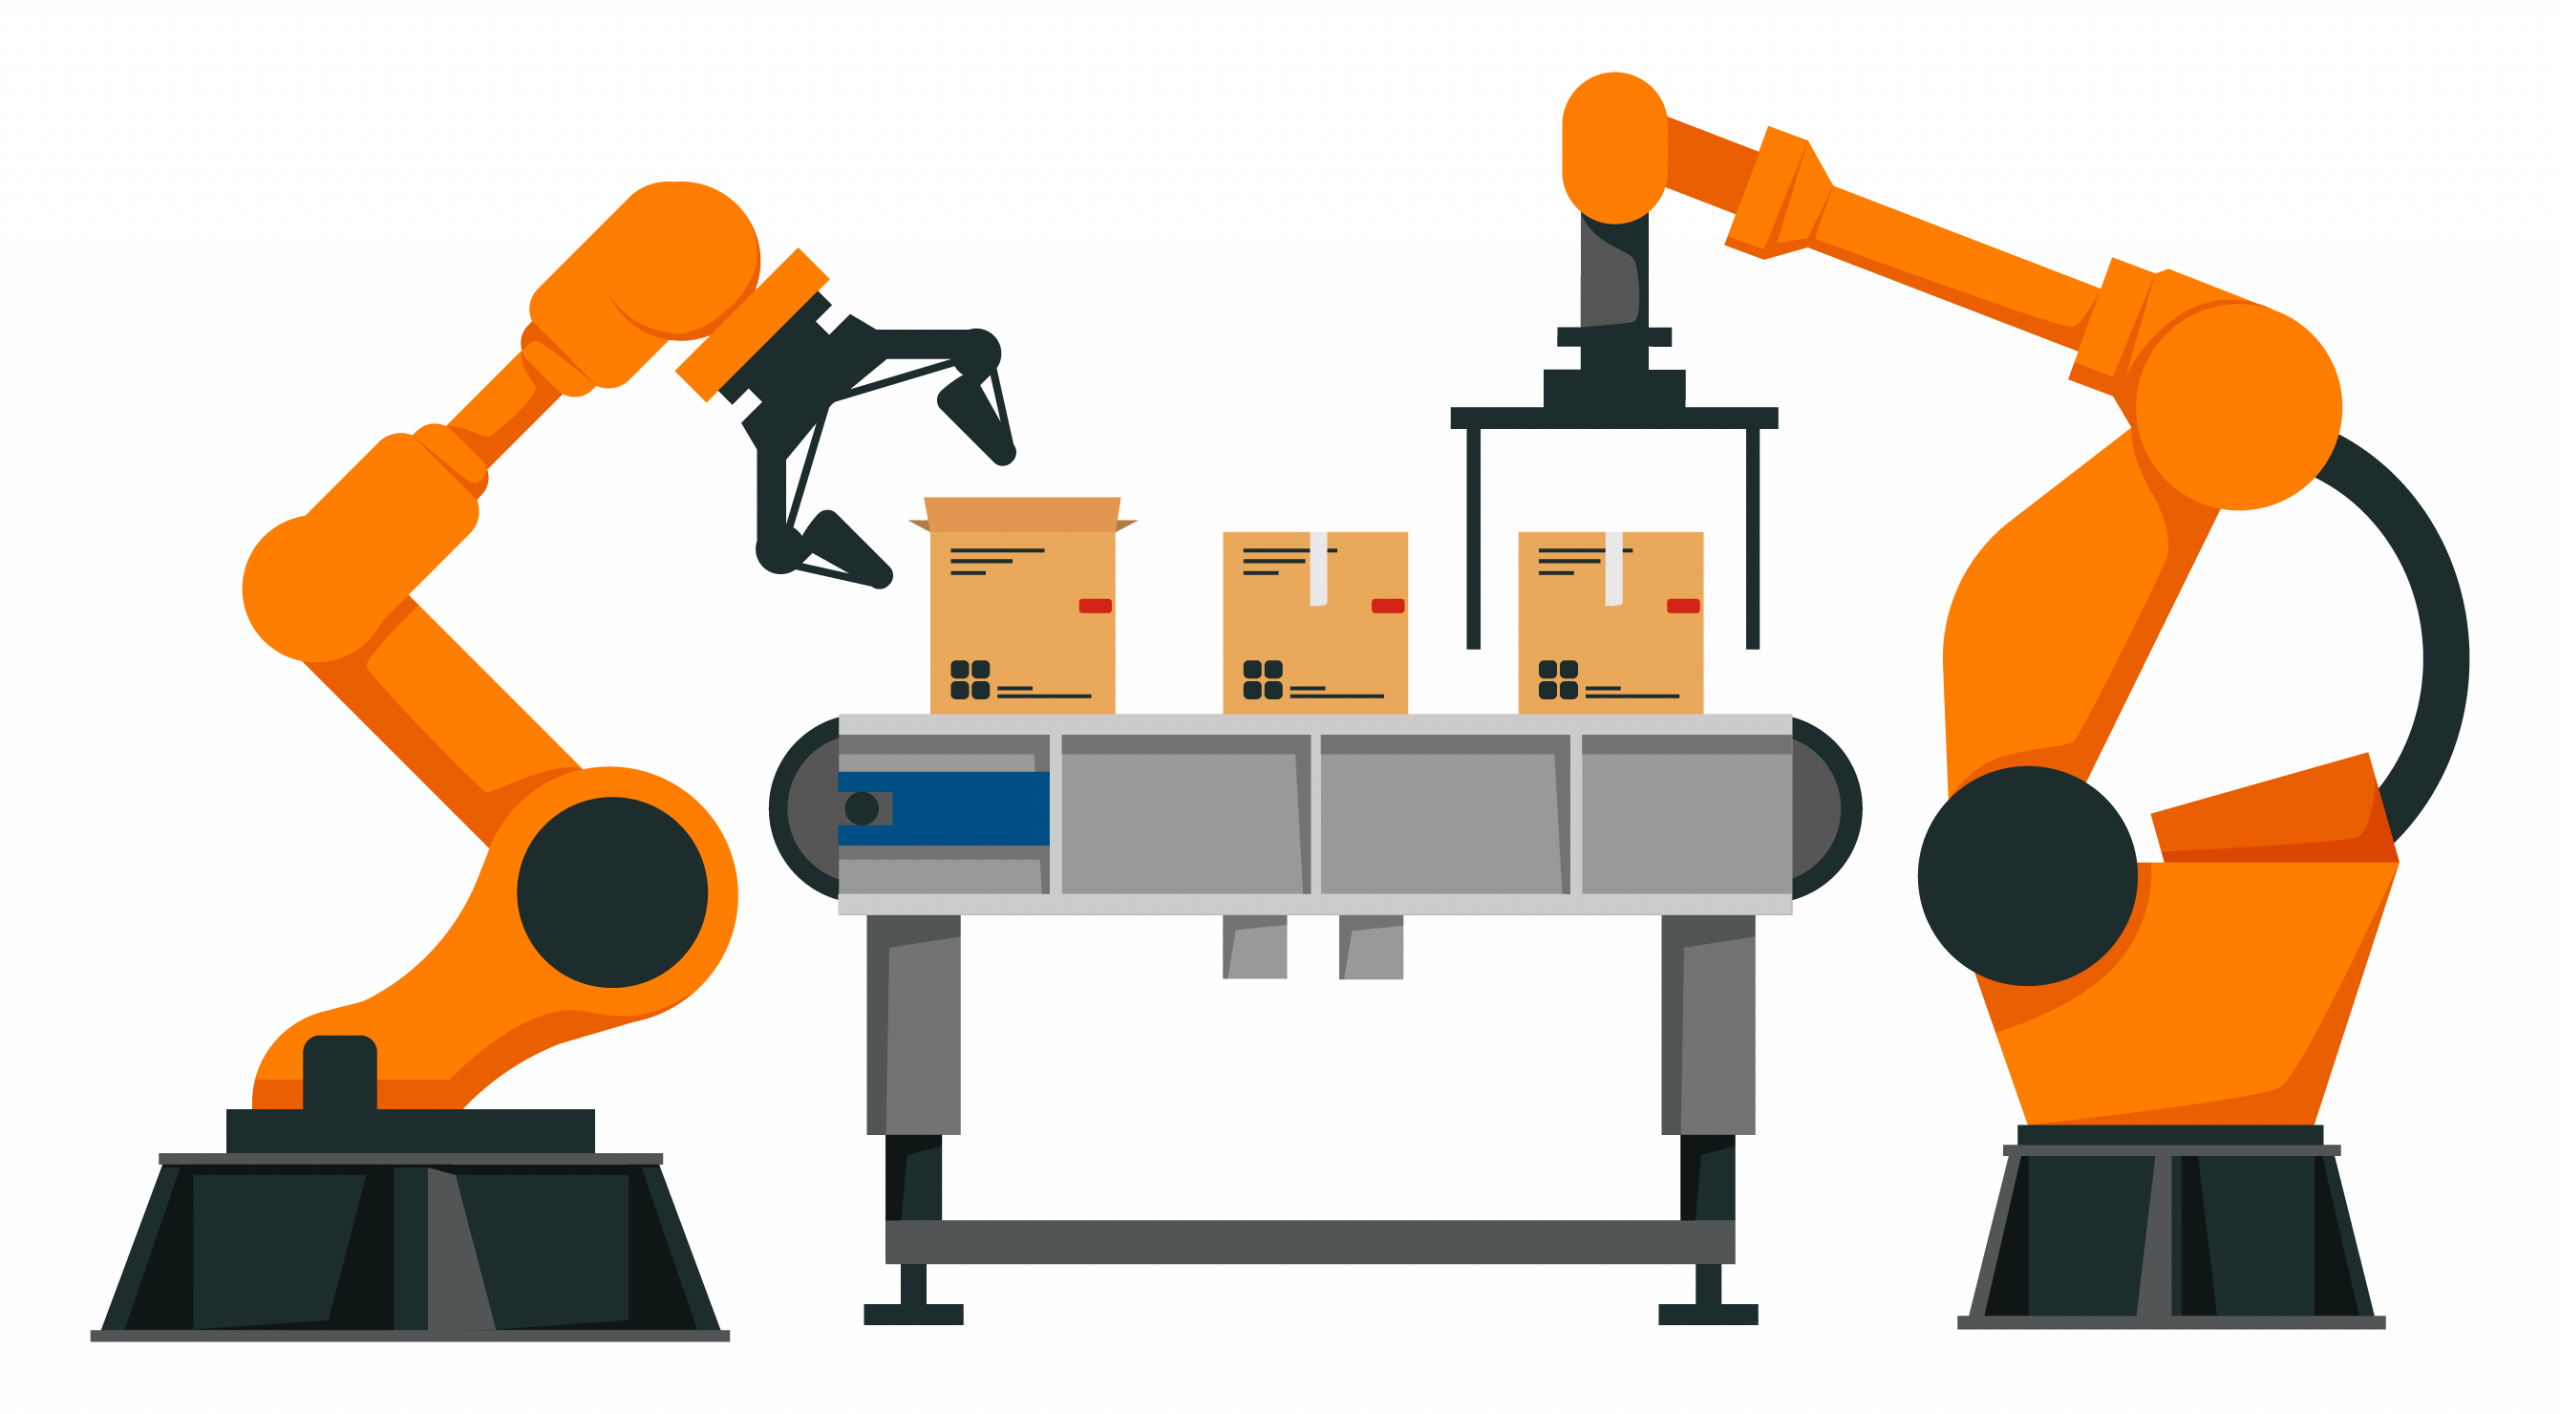 Automate Inventory Process